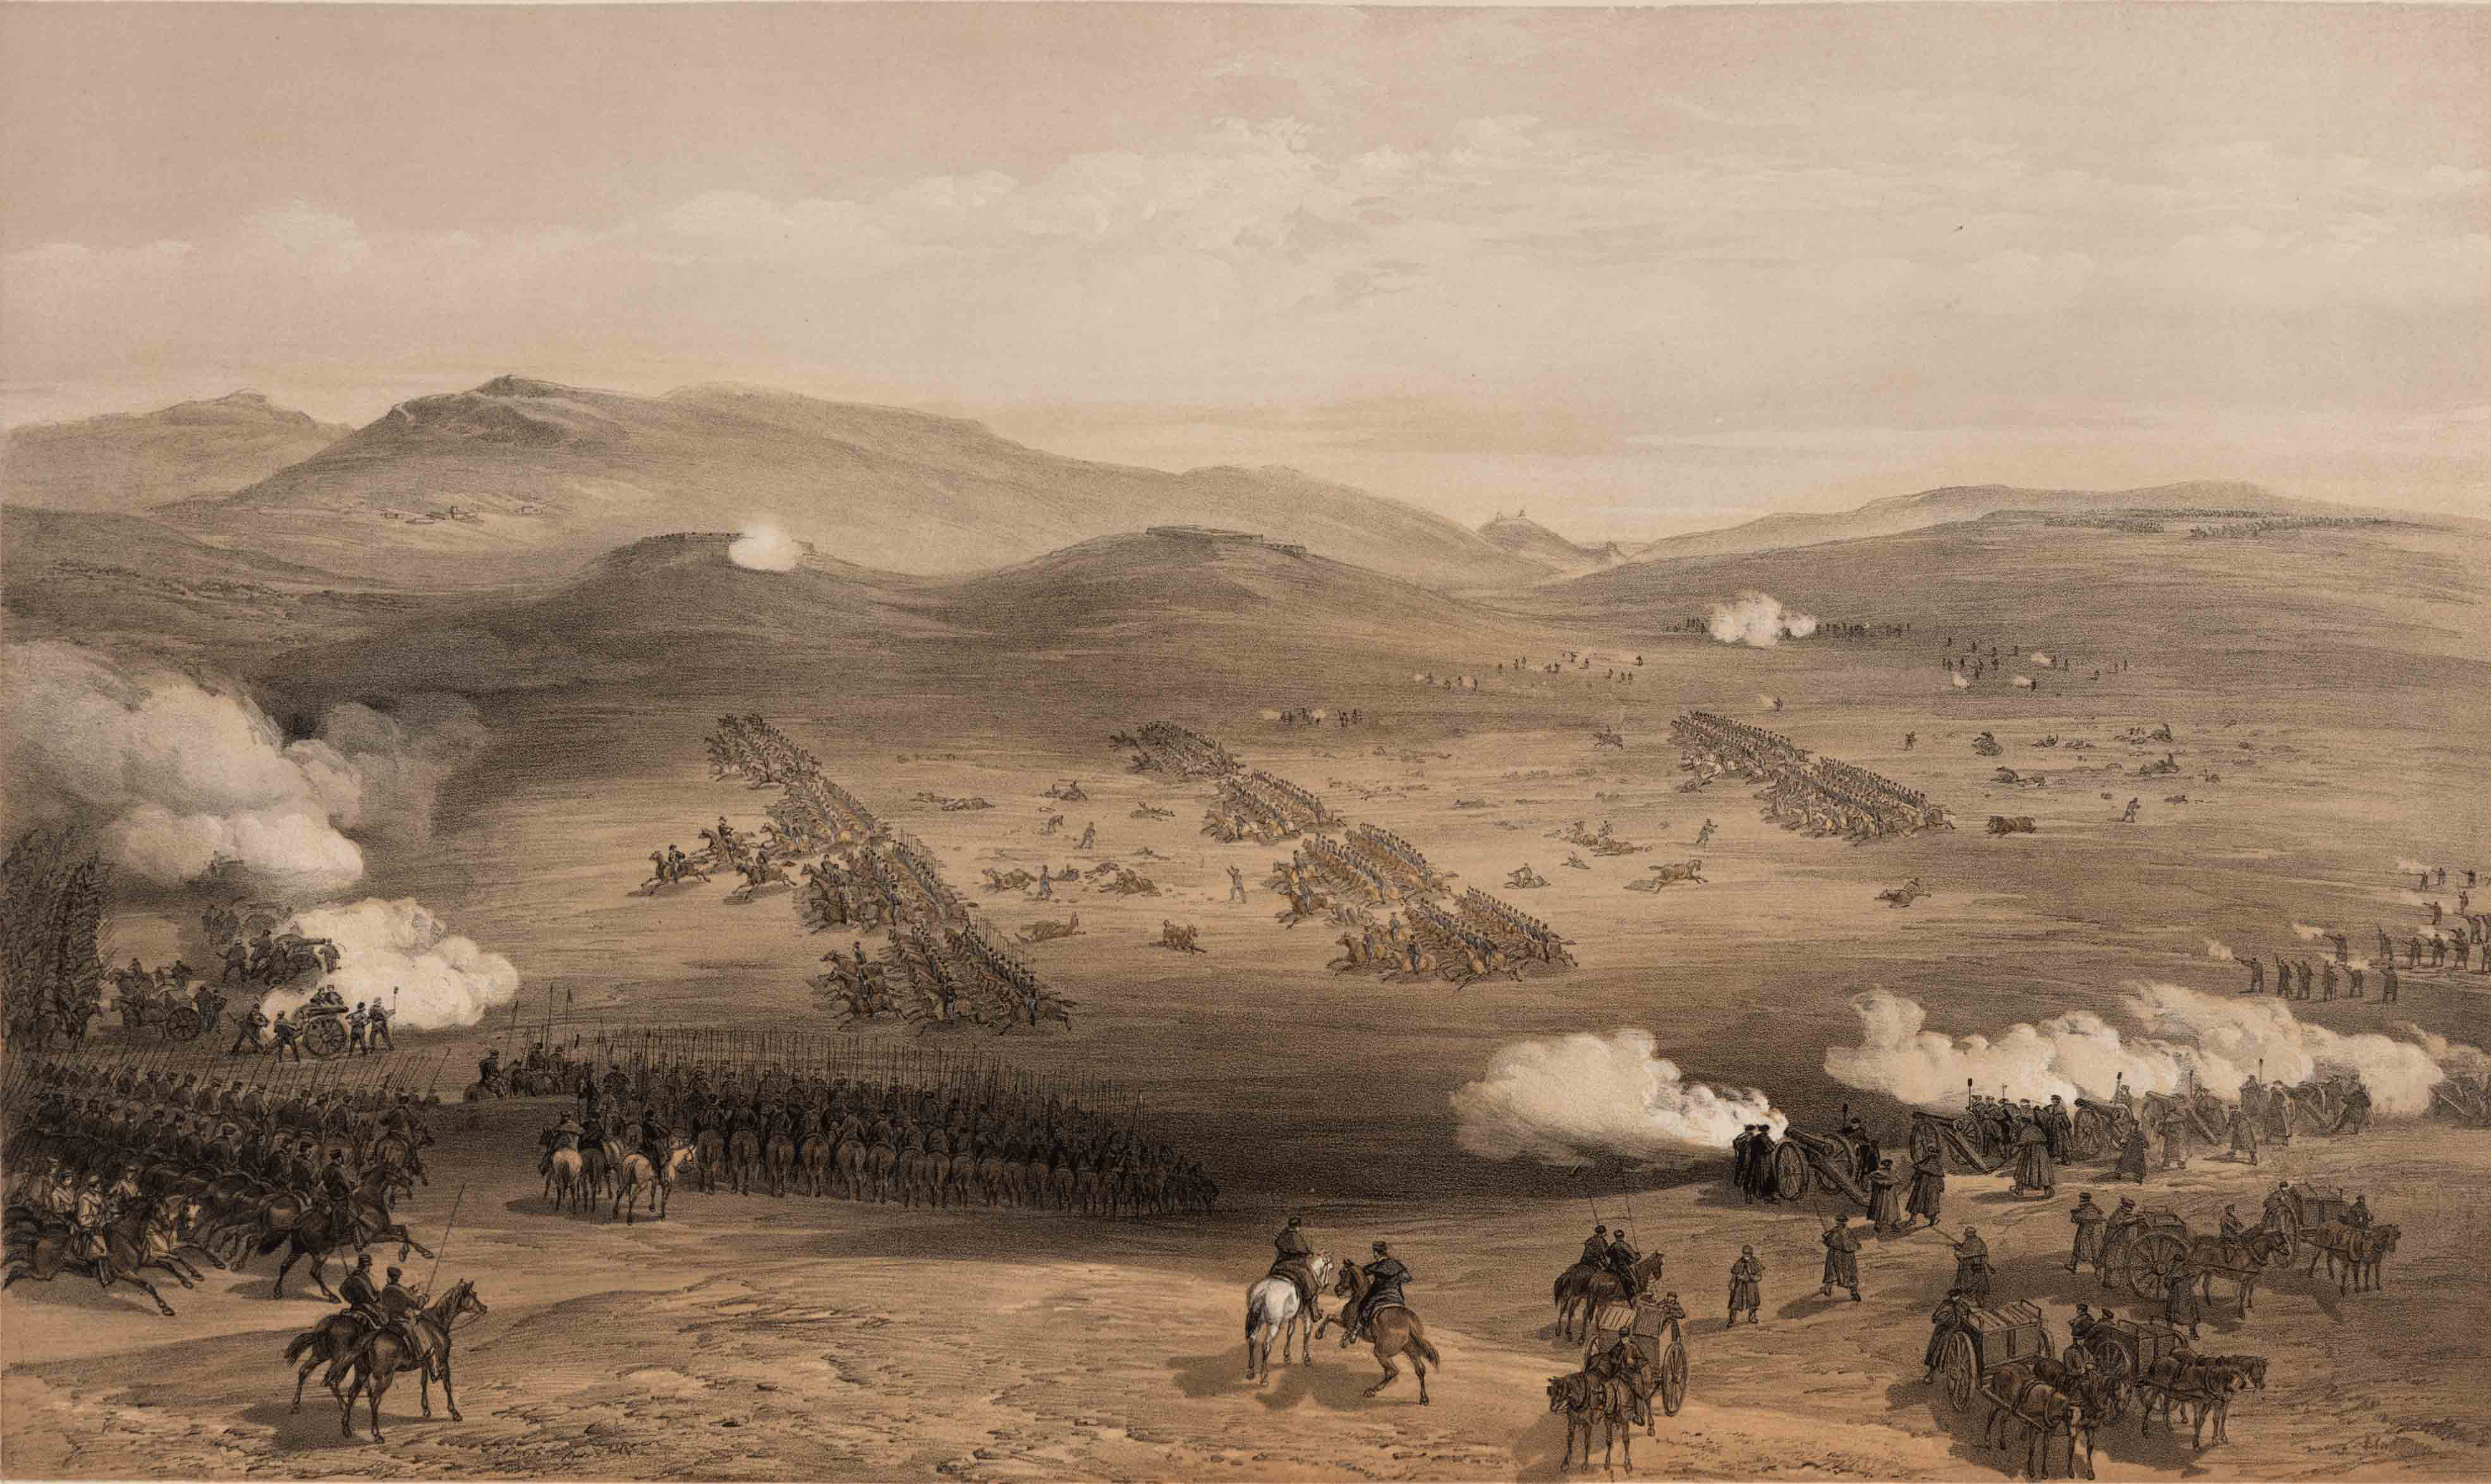 Irish participant in the Charge of the Light Brigade dies